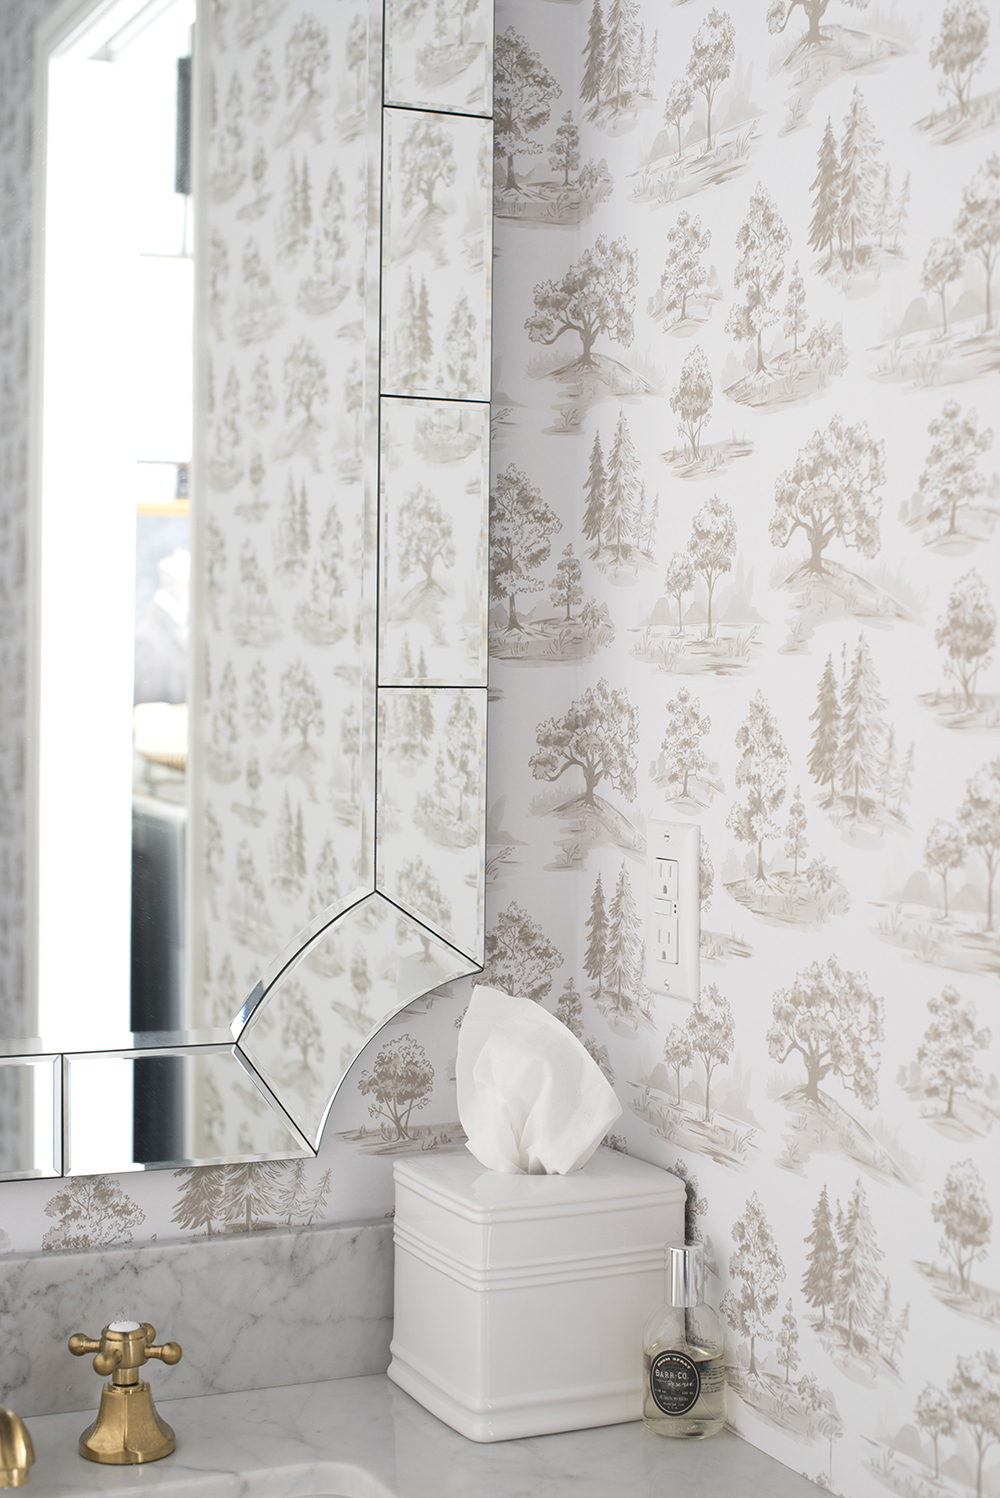 How to Navigate Wallpaper Shopping - roomfortuesday.com